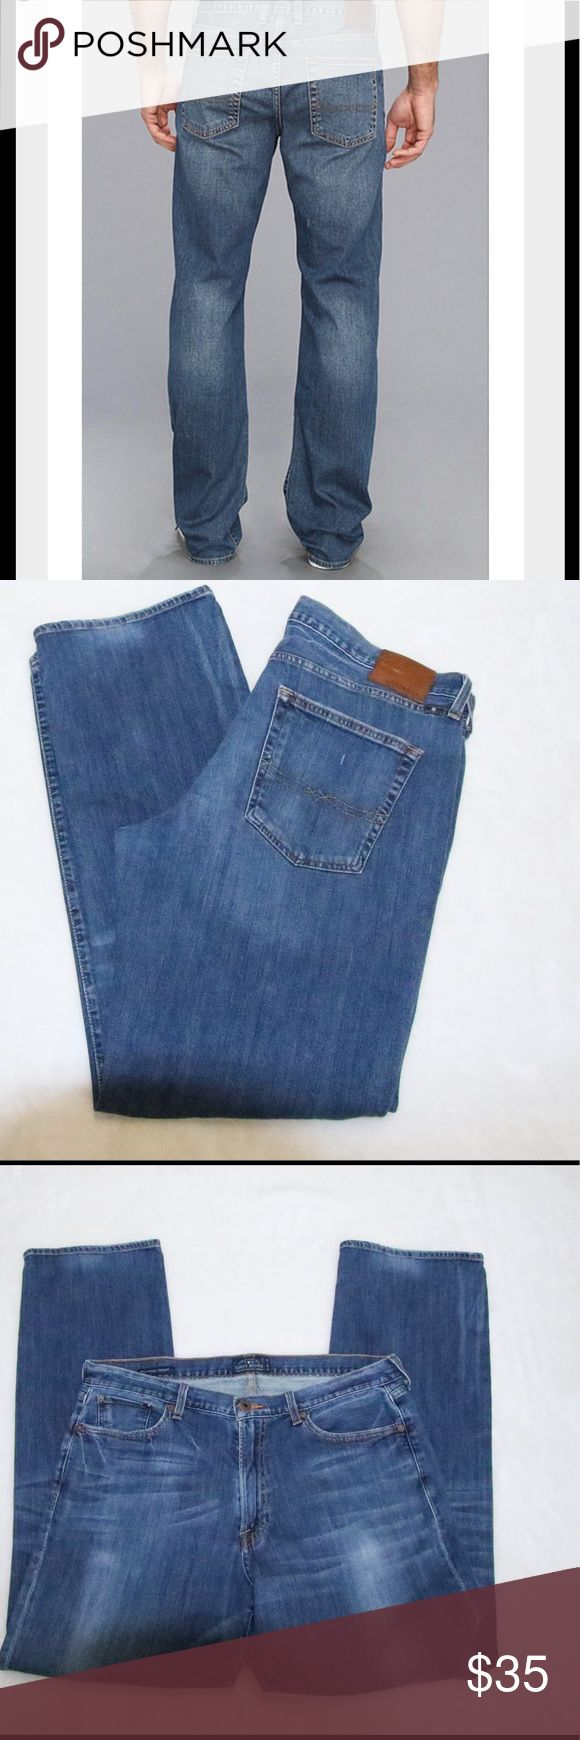 Lucky Jeans Men's 361 vintage straight  36 x 32 Lucky Jeans Men's 361 vintage straight  35 x 32. Previously worn Lucky Brand Jeans Straight